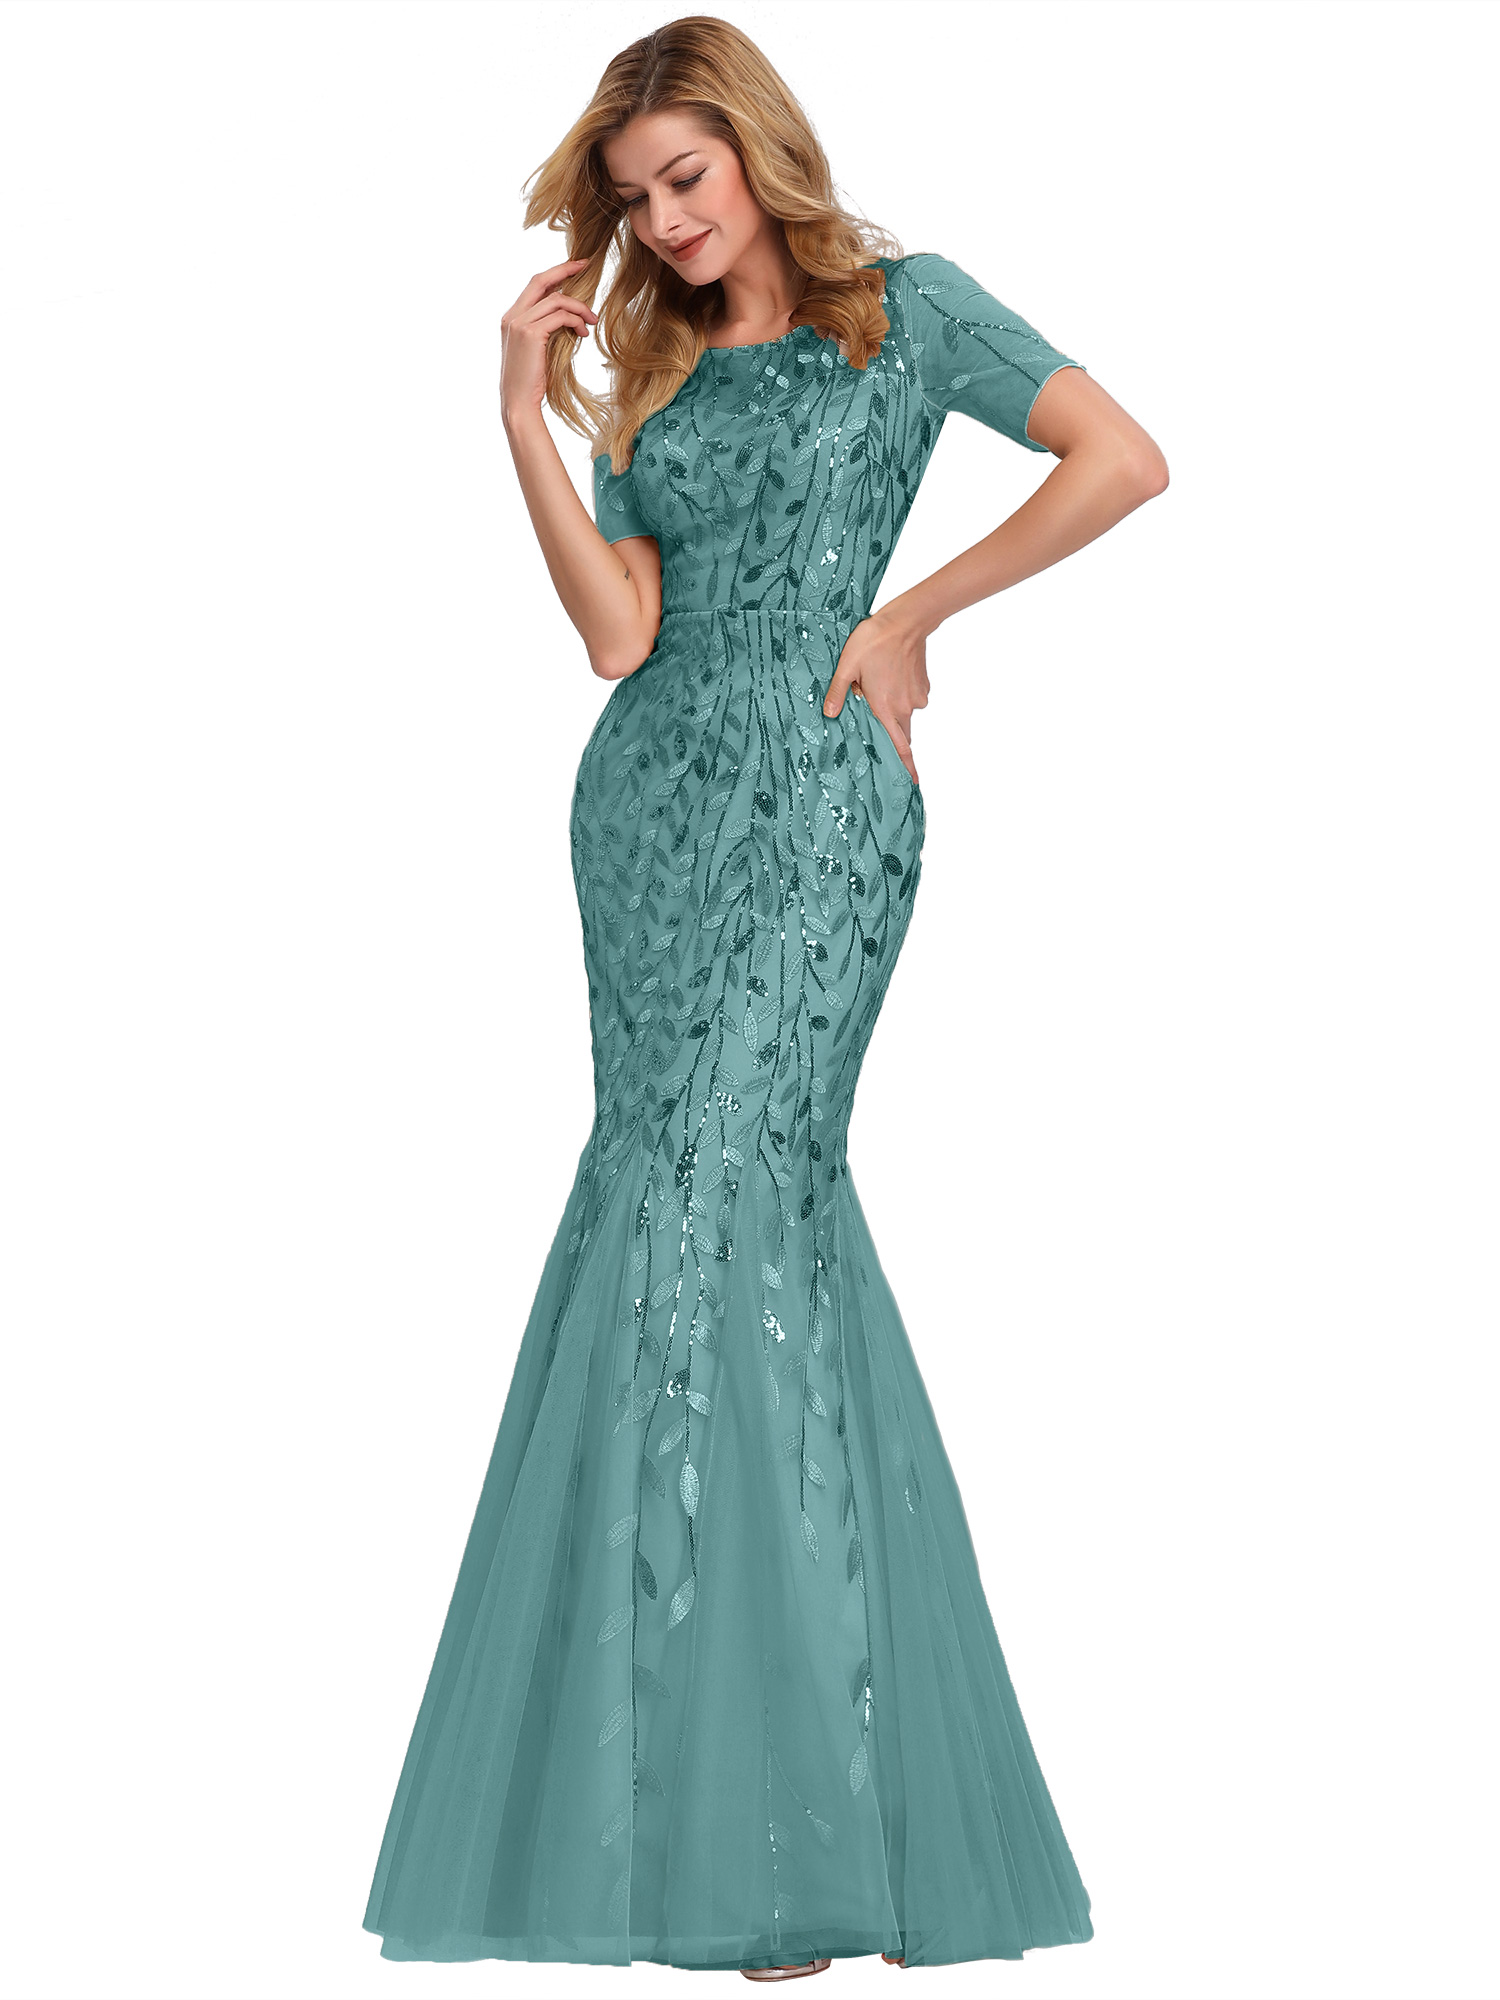 Ever-pretty-US-Mermaid-Evening-Party-Dresses-Formal-Cocktail-Celebrity-Prom-Gown thumbnail 4